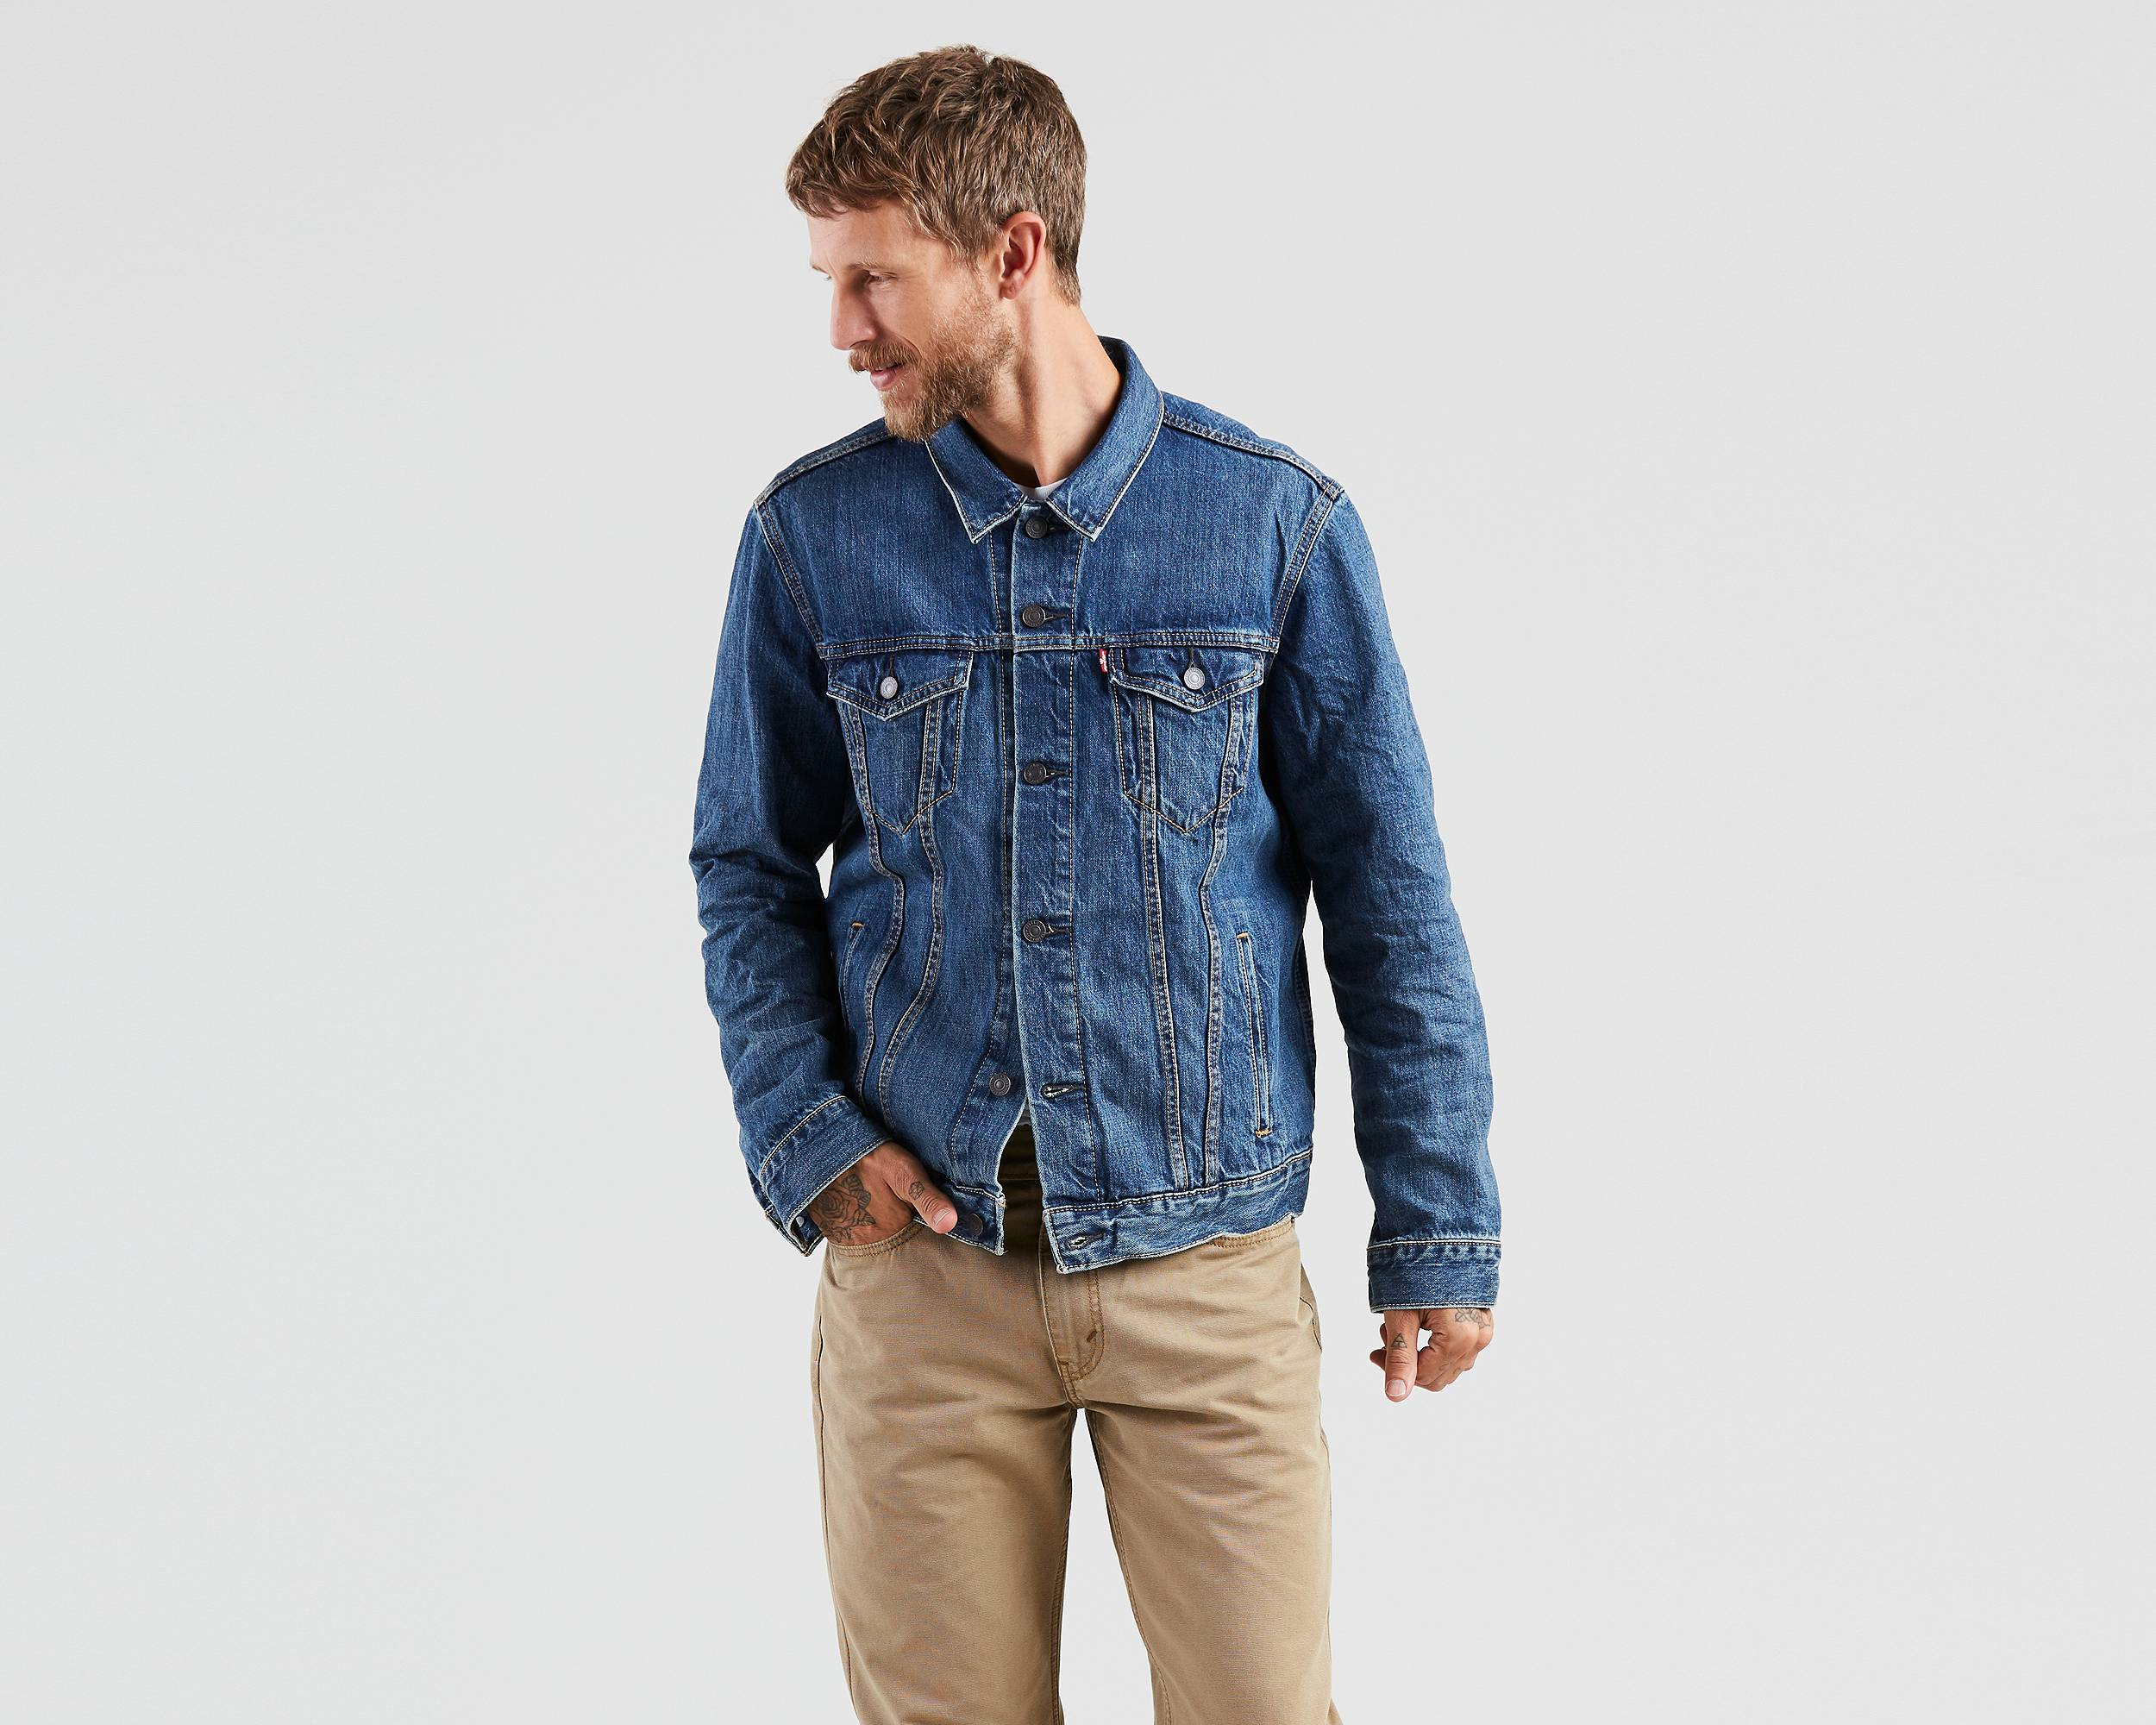 4 Tips for Using Men's Denim Shirt Without Fear